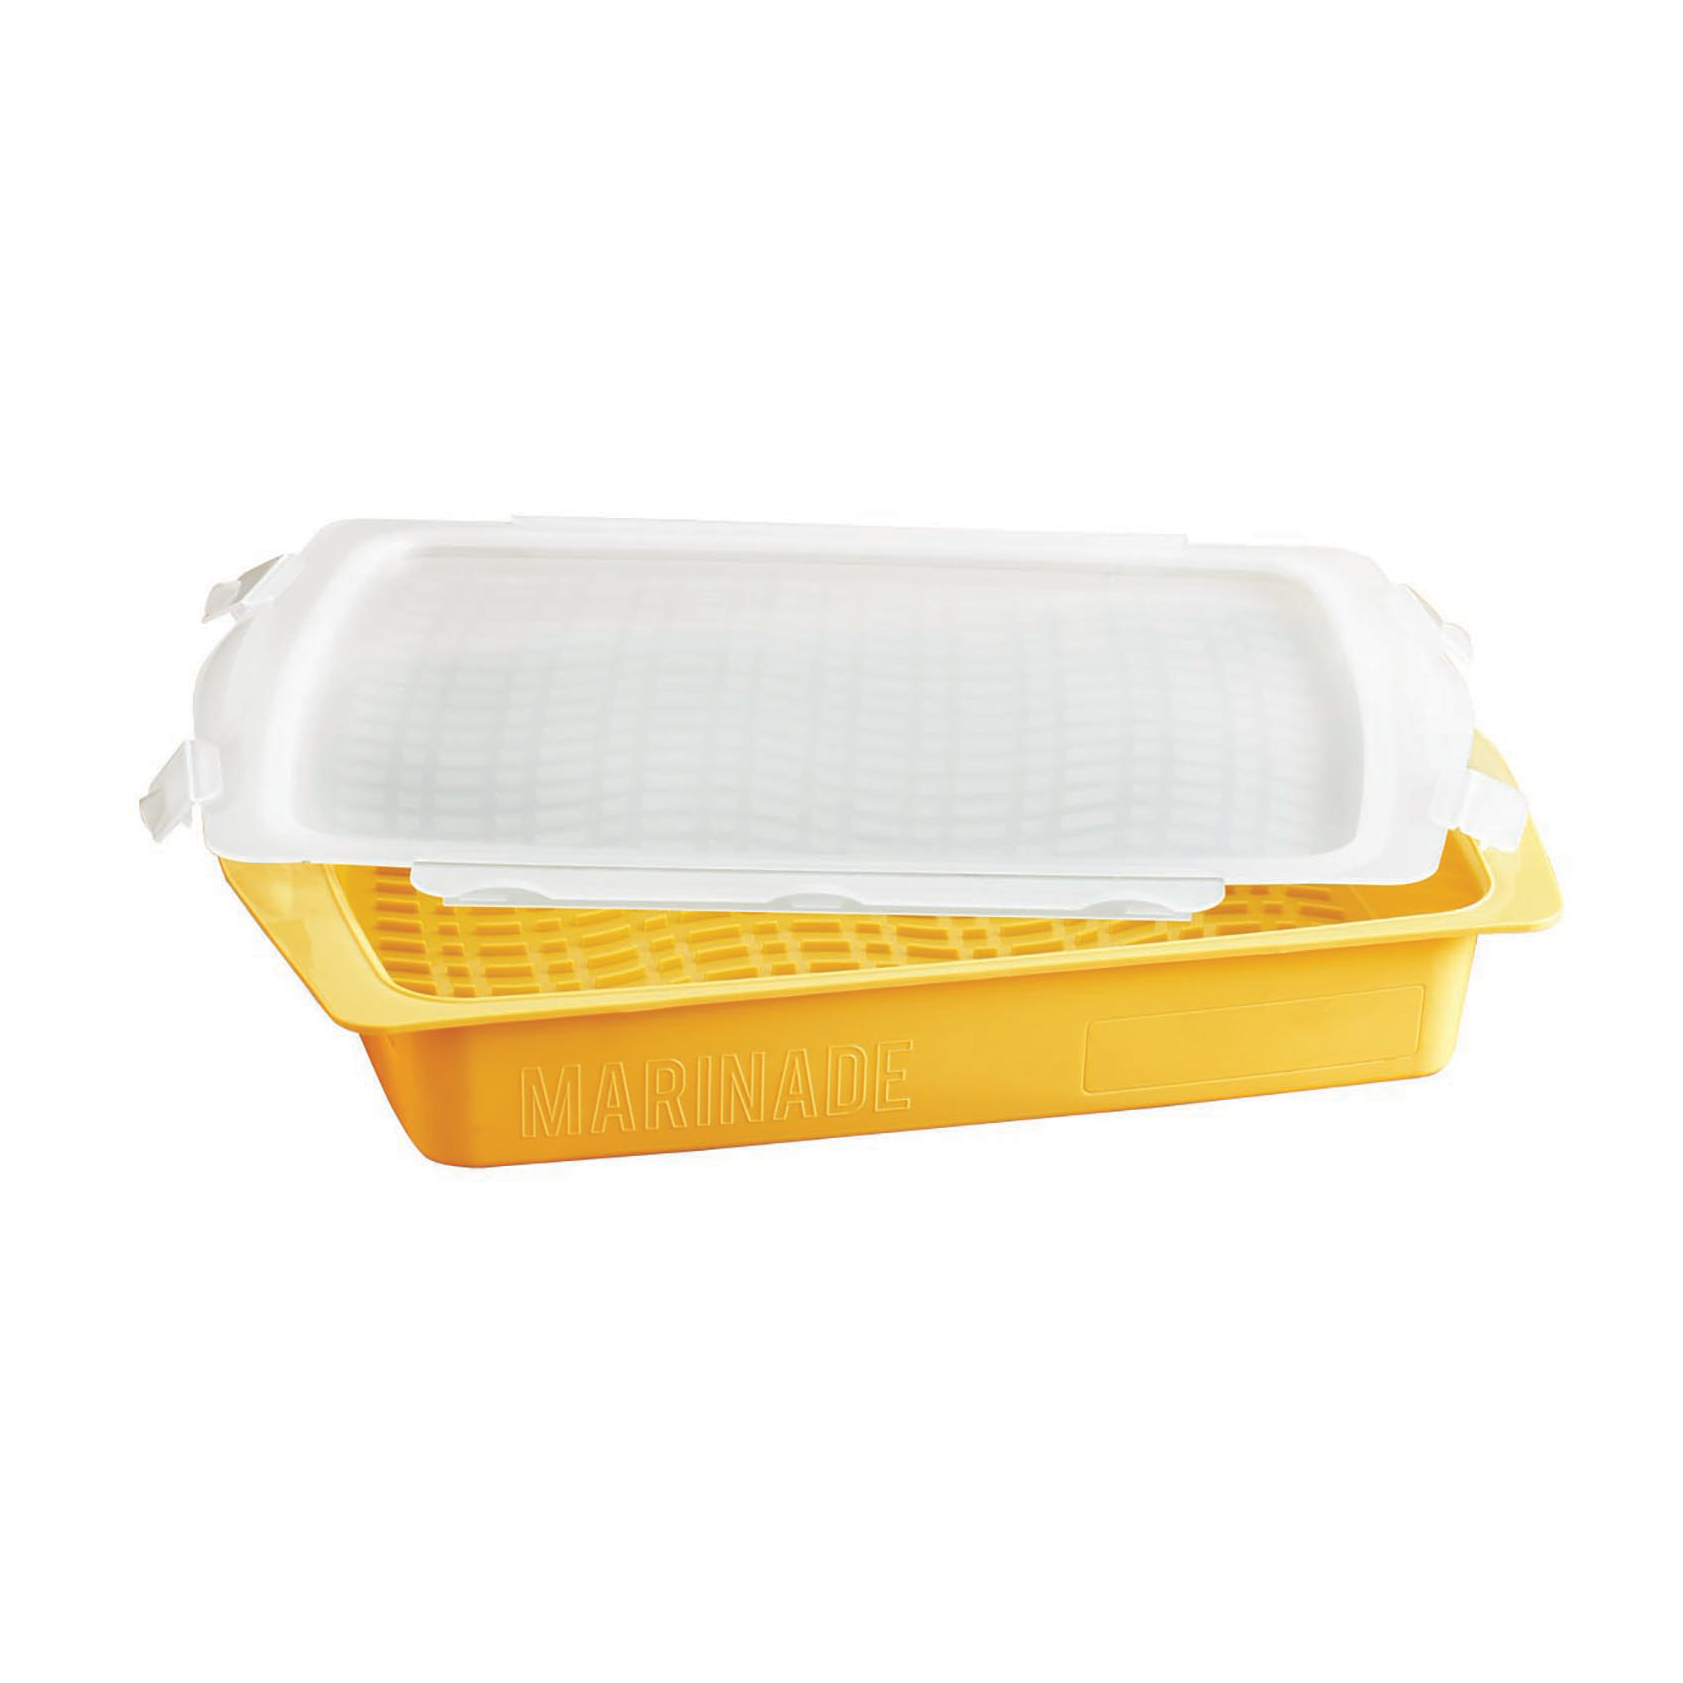 Chef Master 40252Y food storage container, box